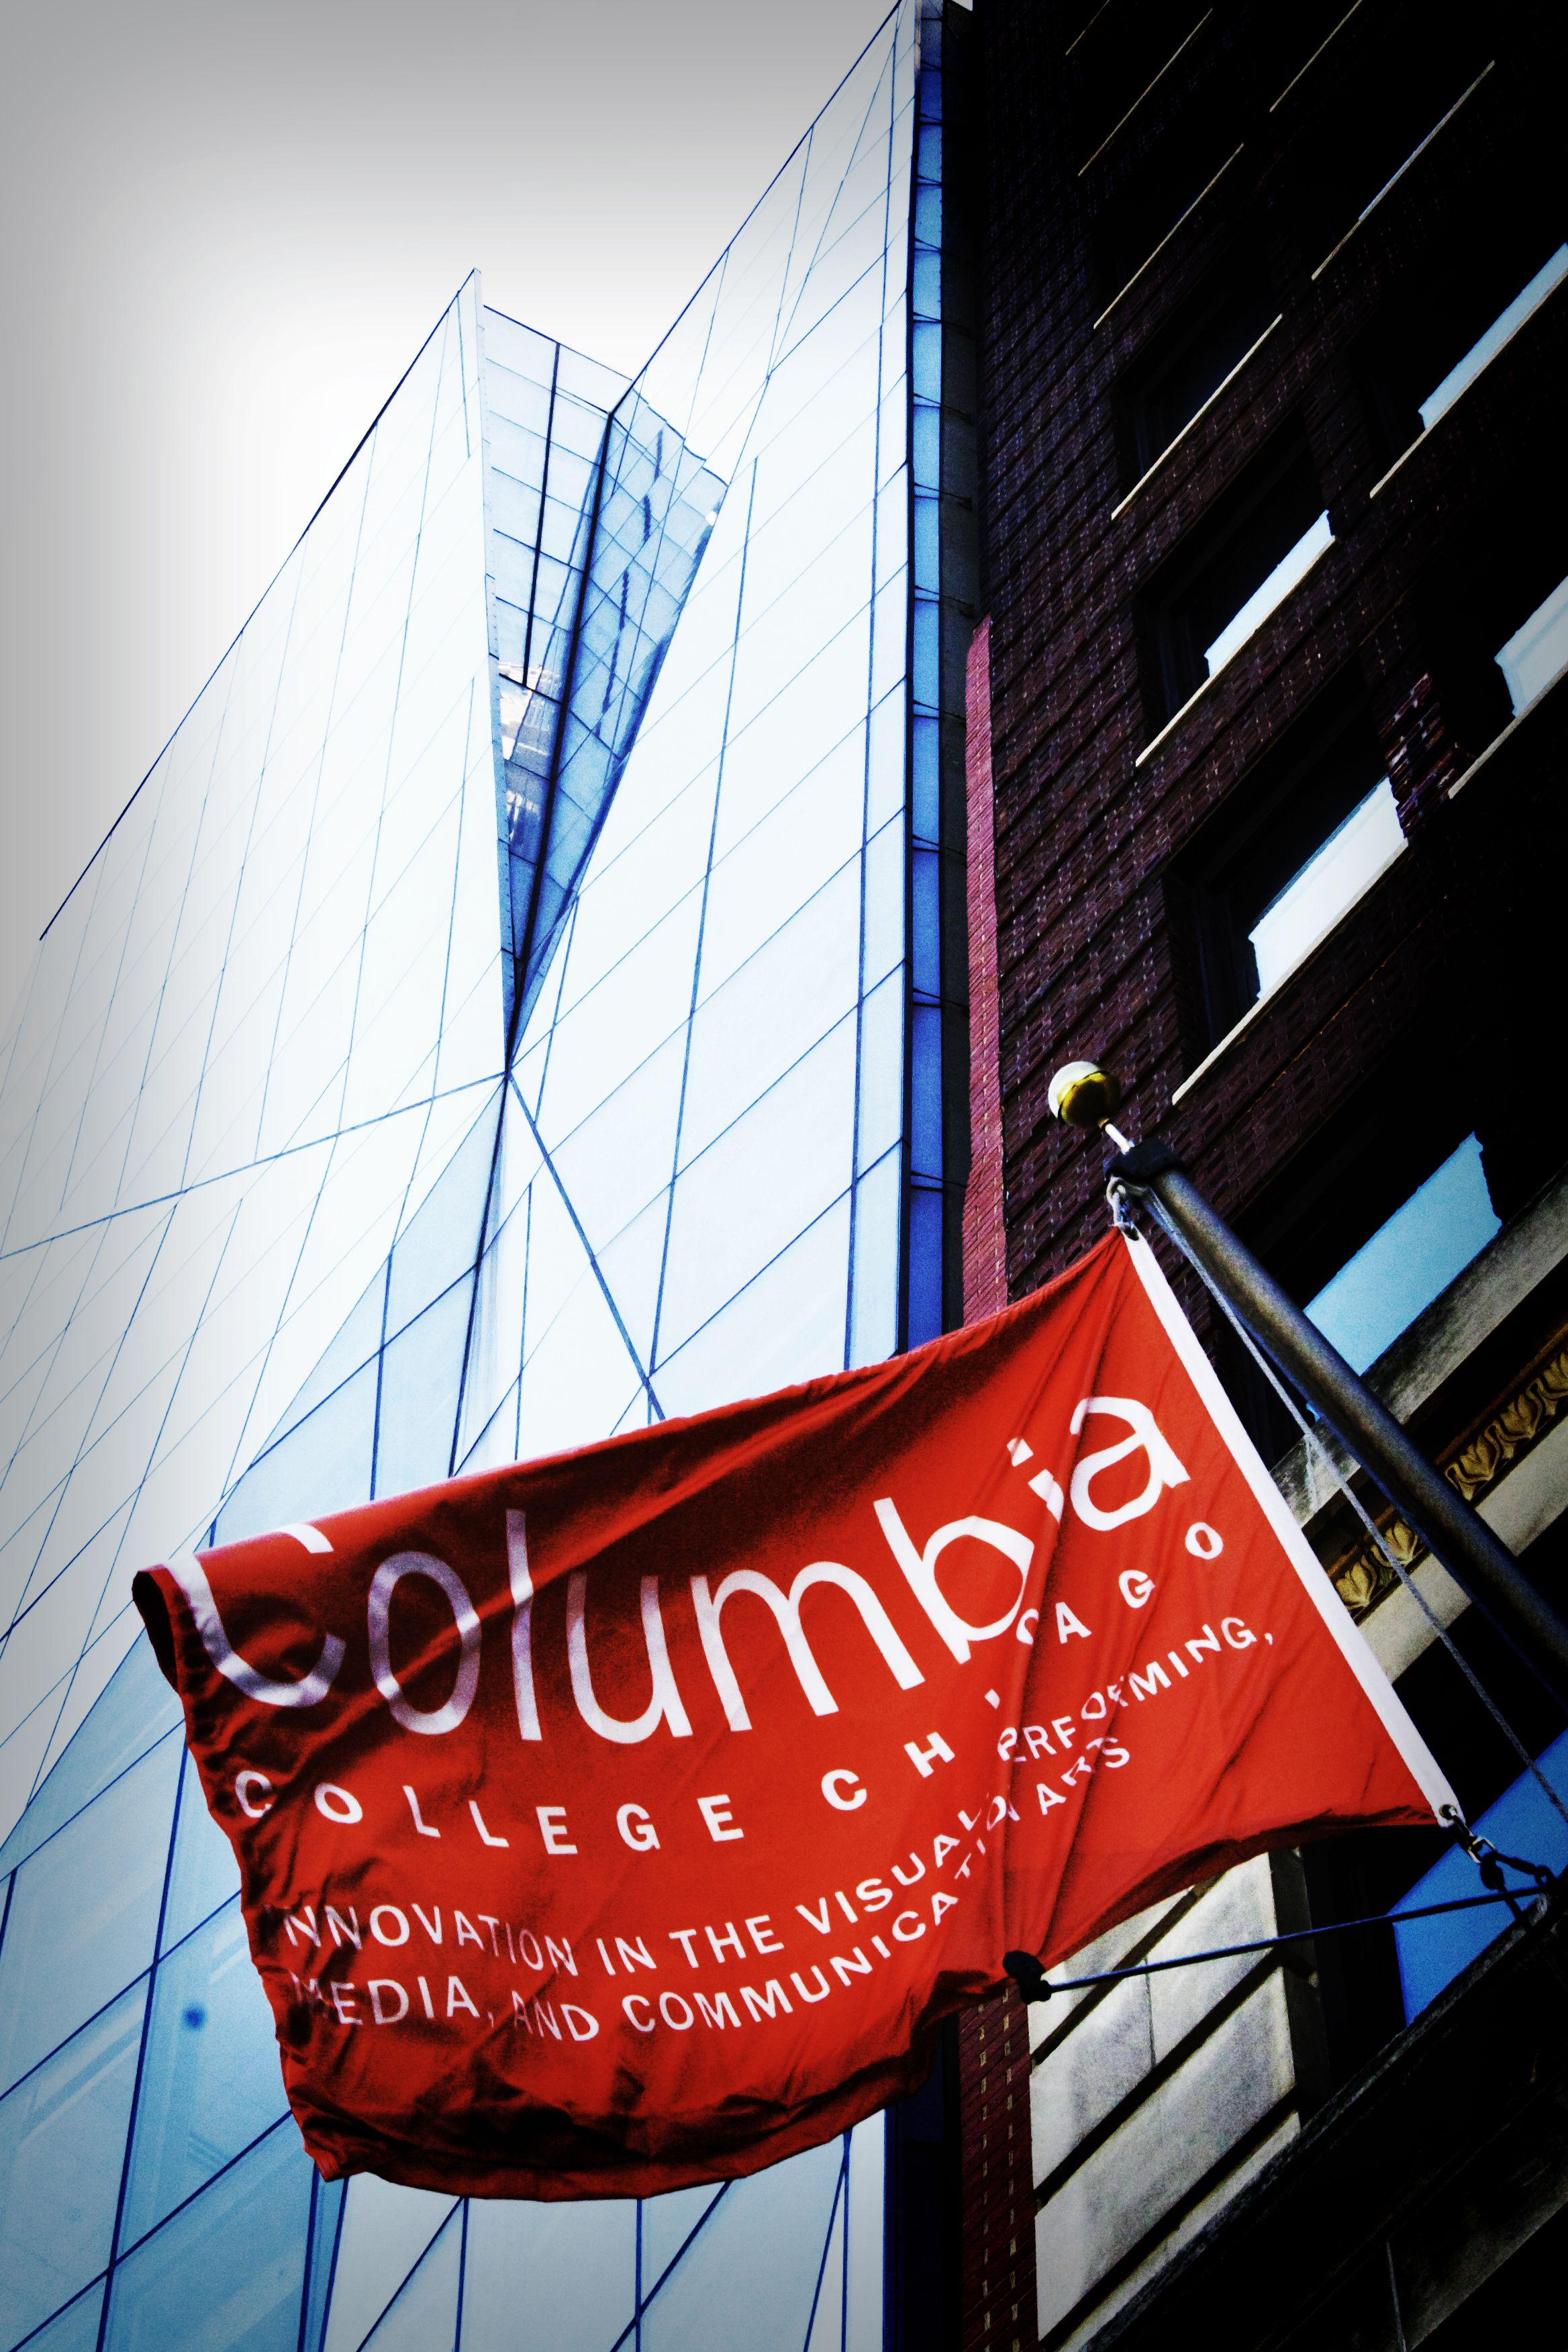 see what it takes to get into columbia college chicago what it columbia college chicago is an institution of higher education specializing in arts and media disciplines